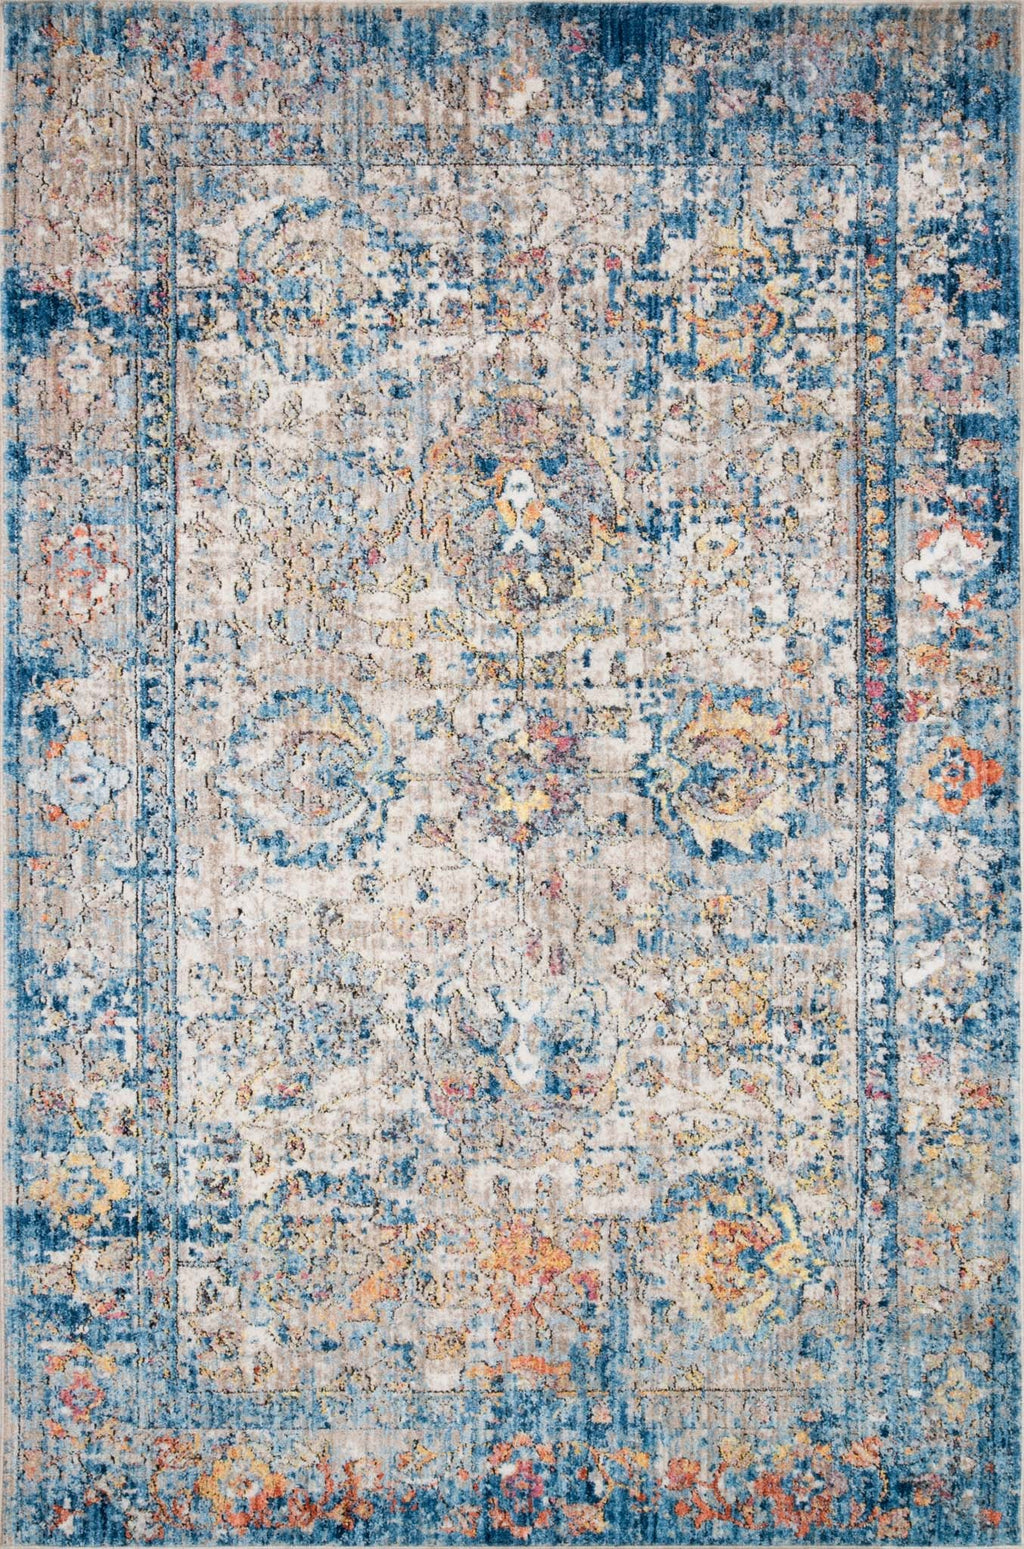 MEDUSA Collection Rug  in  BLUE / MULTI Blue Runner Power-Loomed Polyester